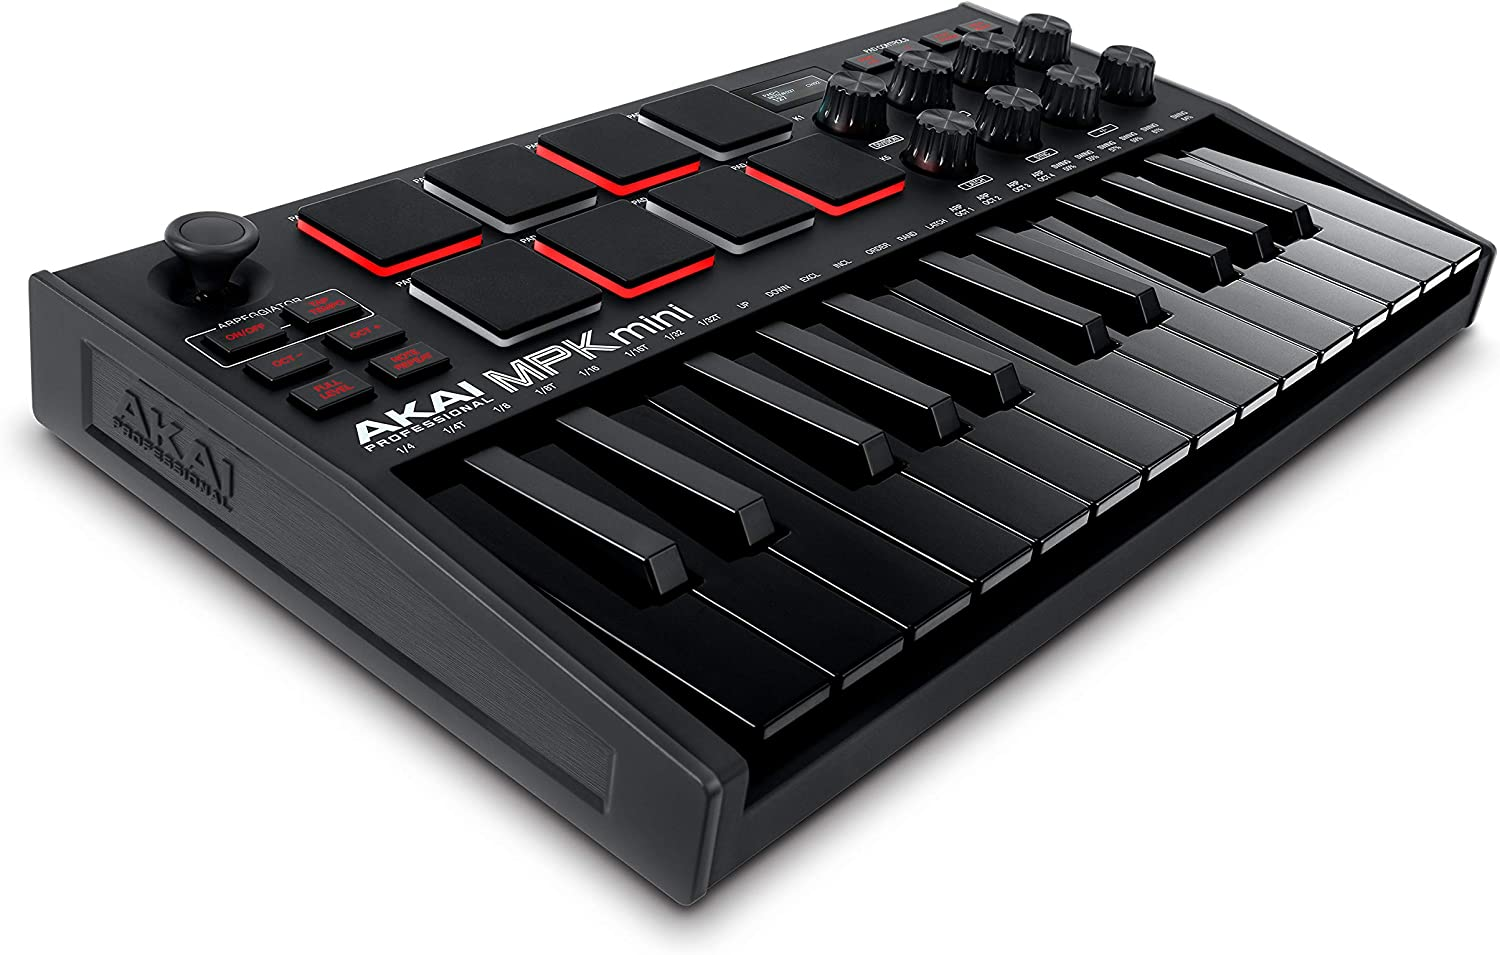 Amazon.com: AKAI Professional MPK Mini MK3 - 25 Key USB MIDI Keyboard  Controller With 8 Backlit Drum Pads, 8 Knobs and Music Production Software  Included (Black): Musical Instruments